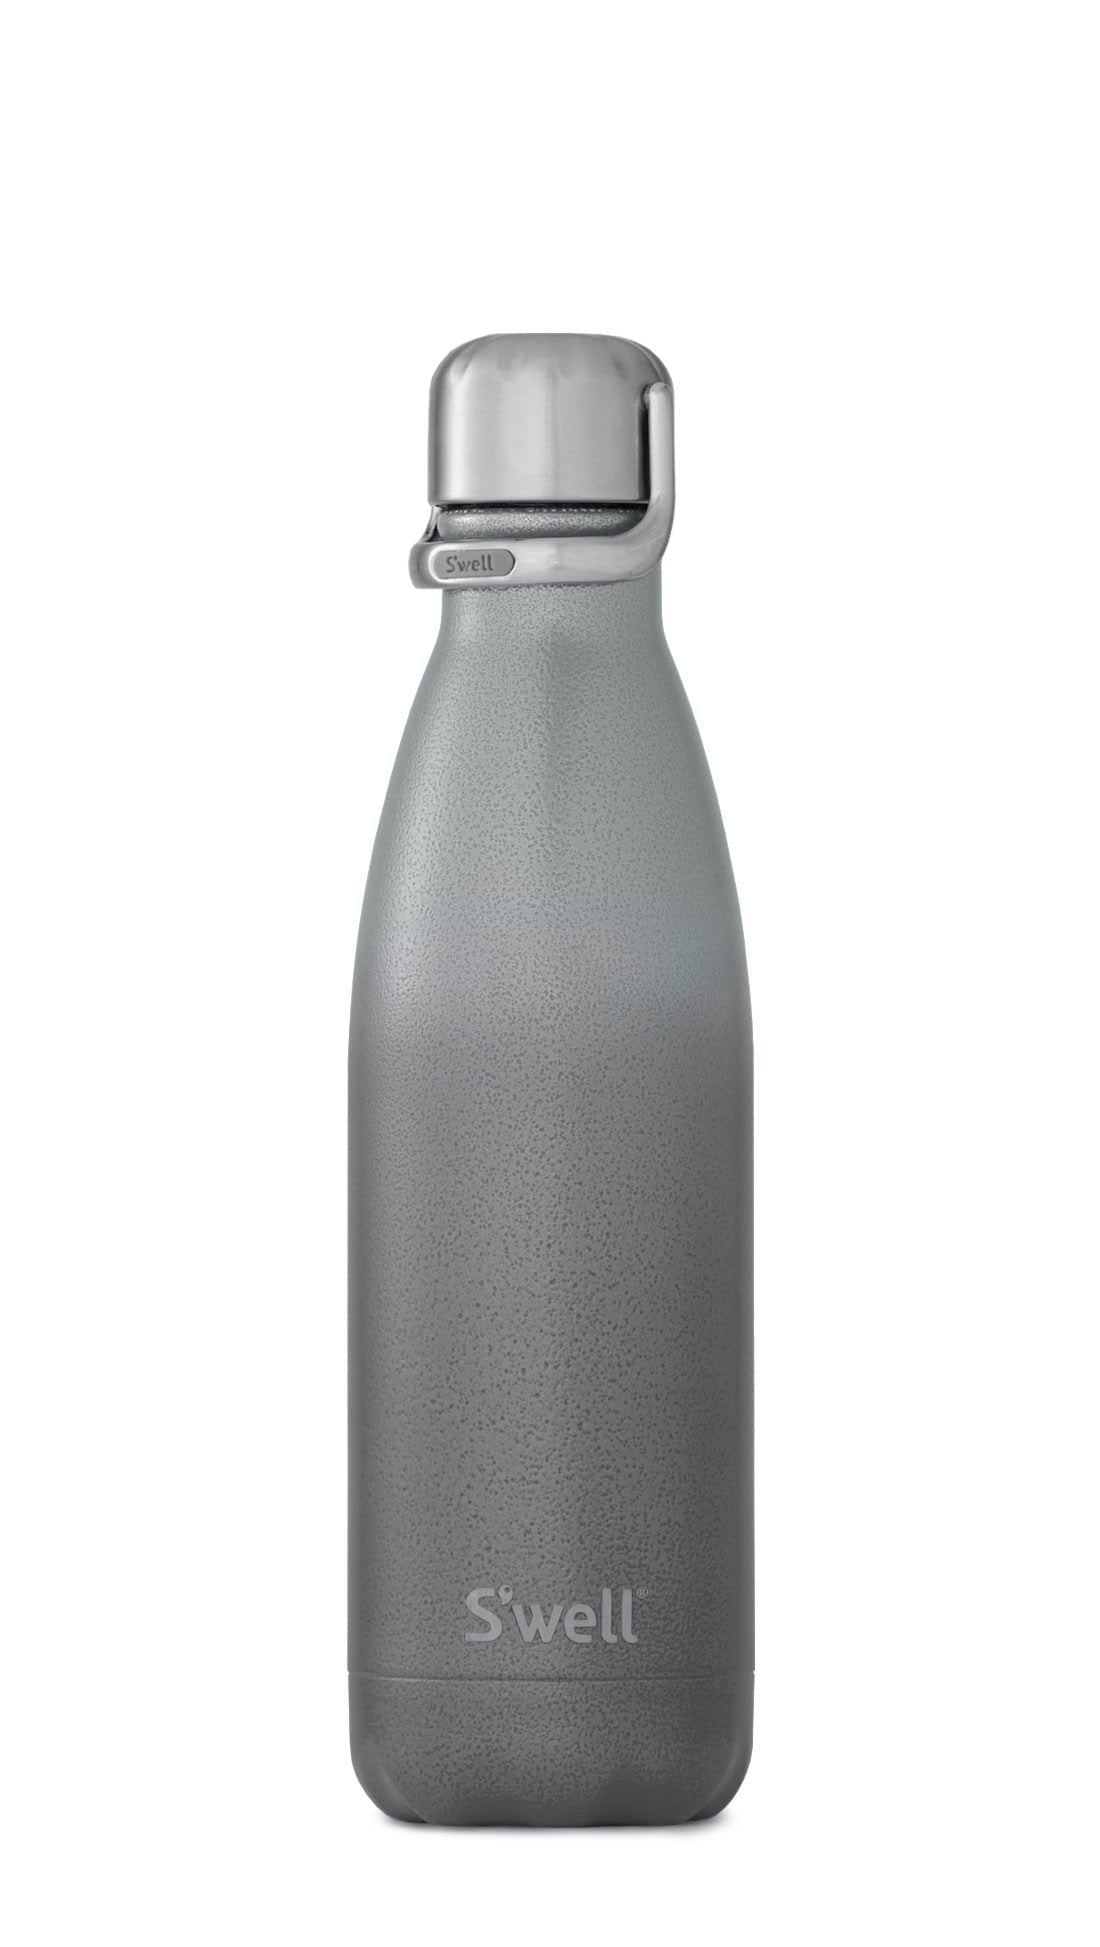 Swell 17oz Travel Bottle with Handle in Zeus Grey